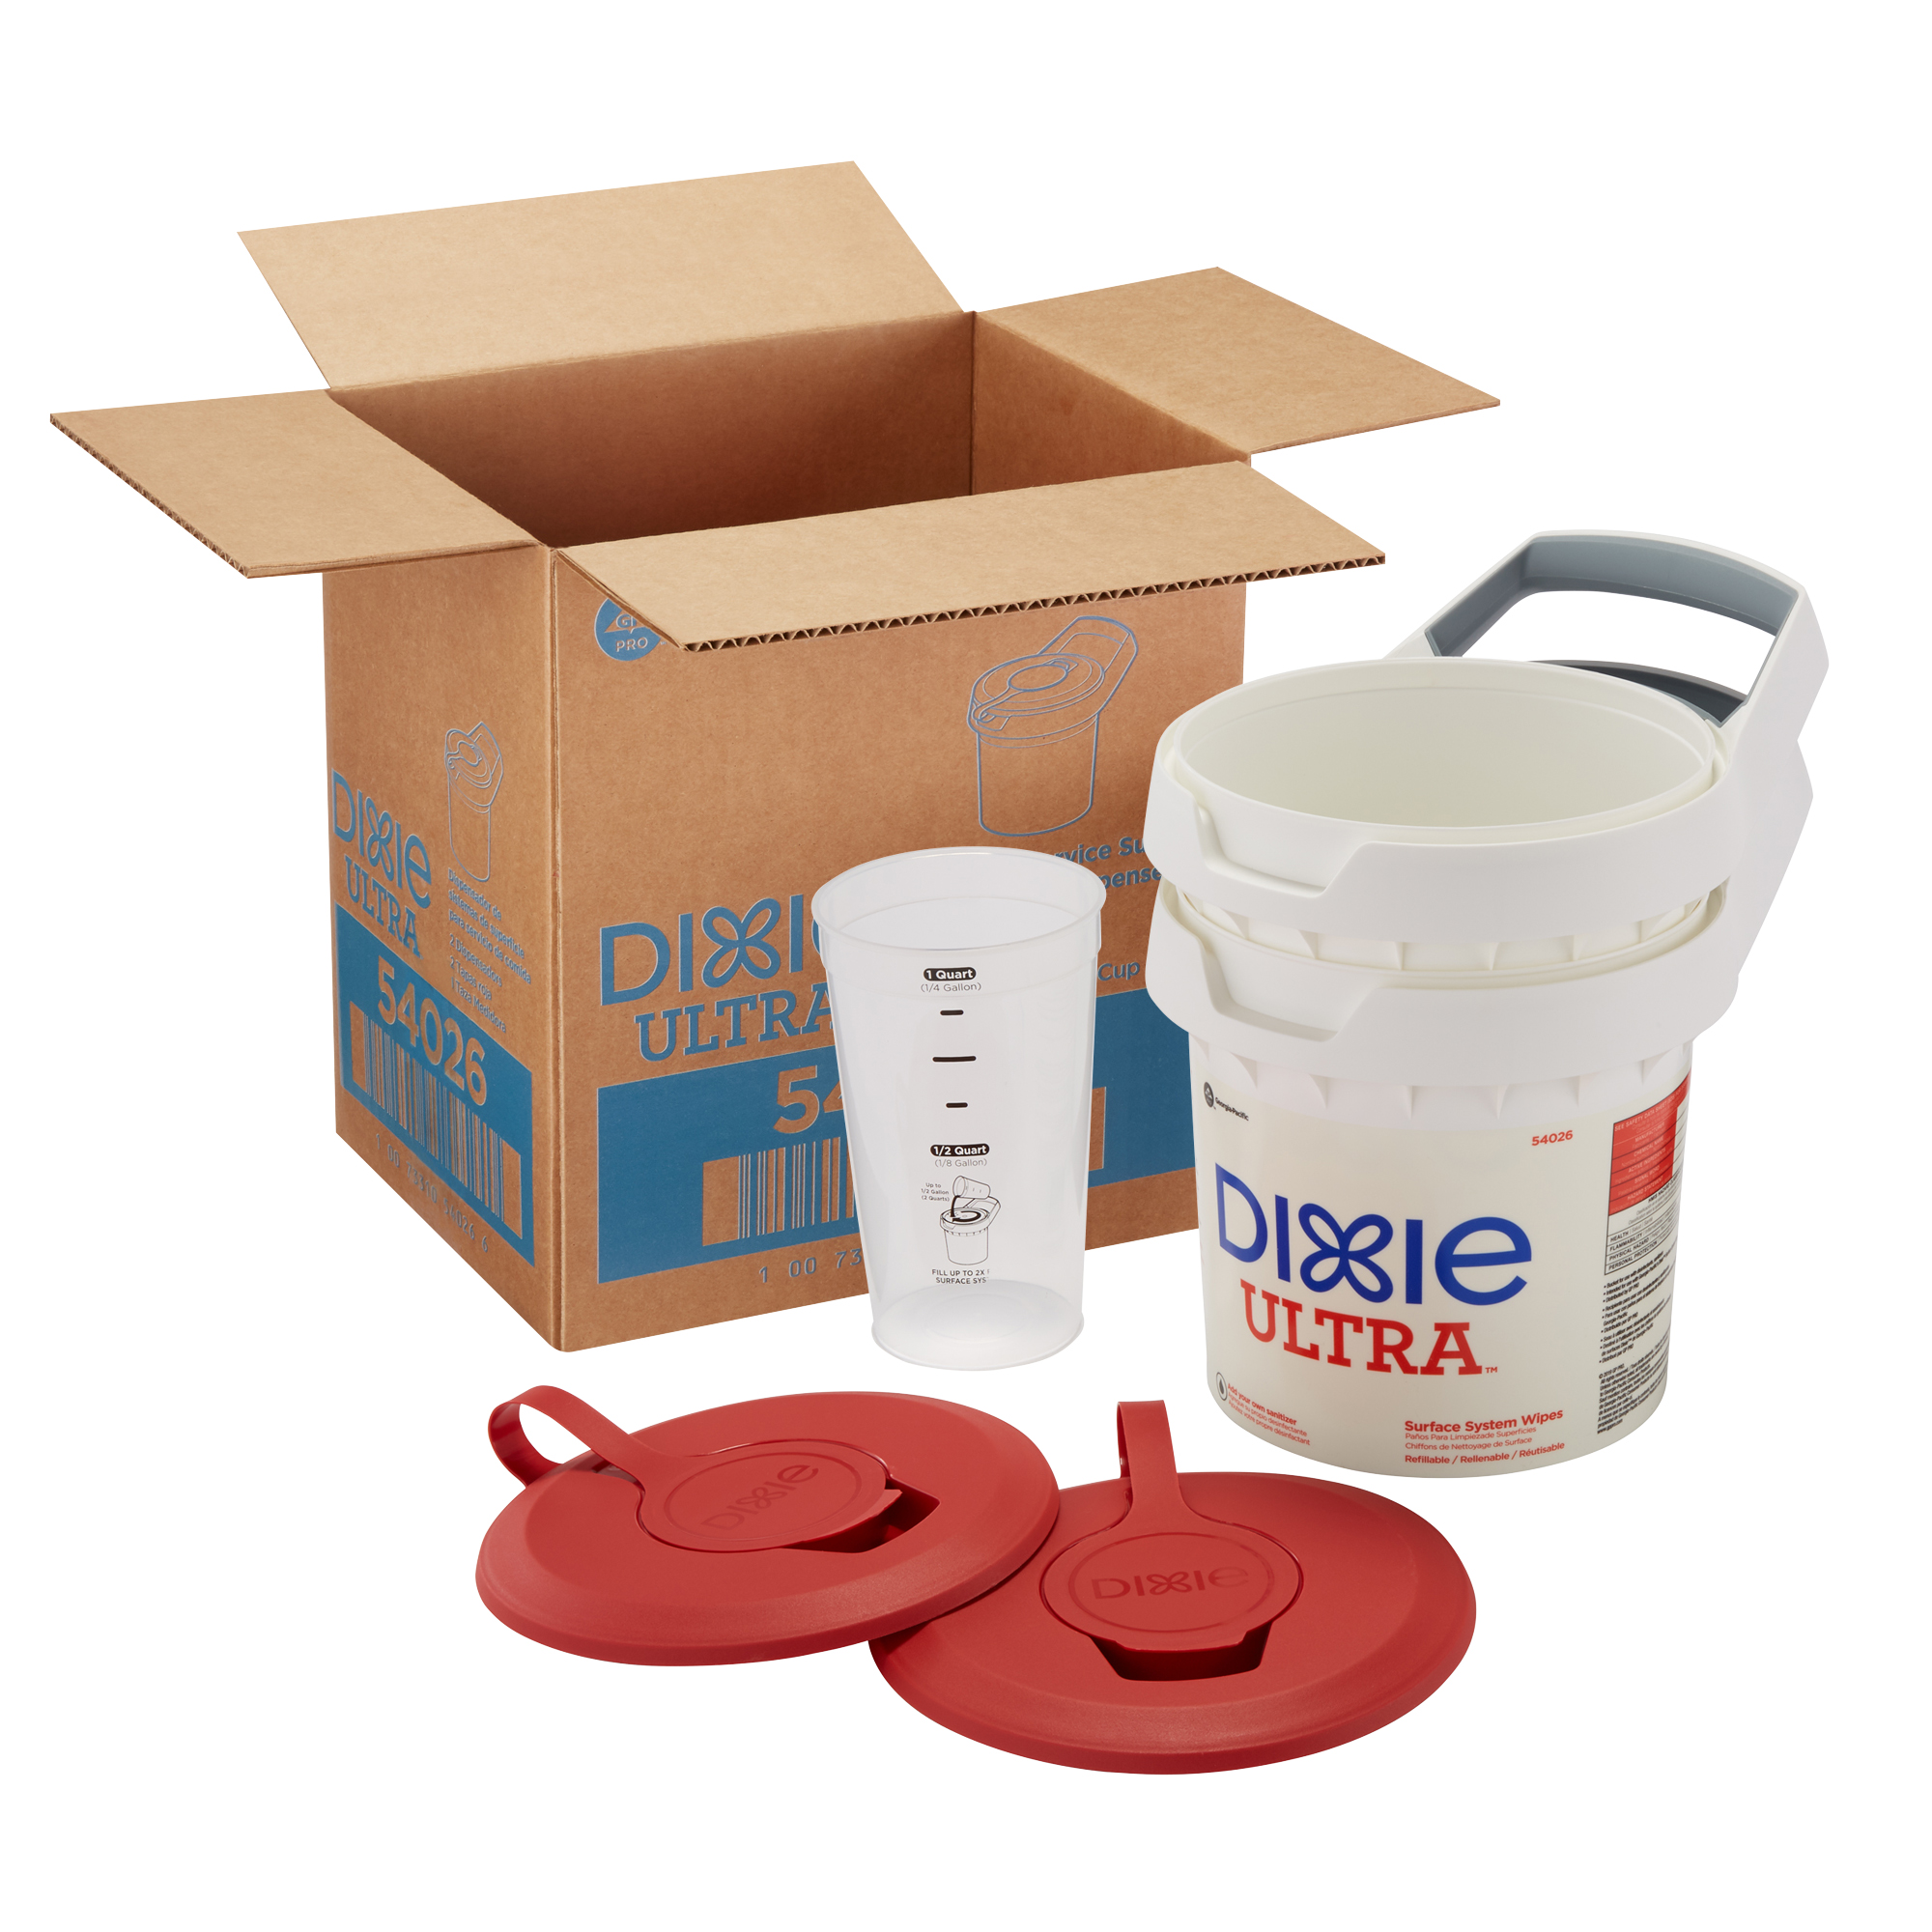 dixie ultra surface system box contents, buckets, lids, measuring cup